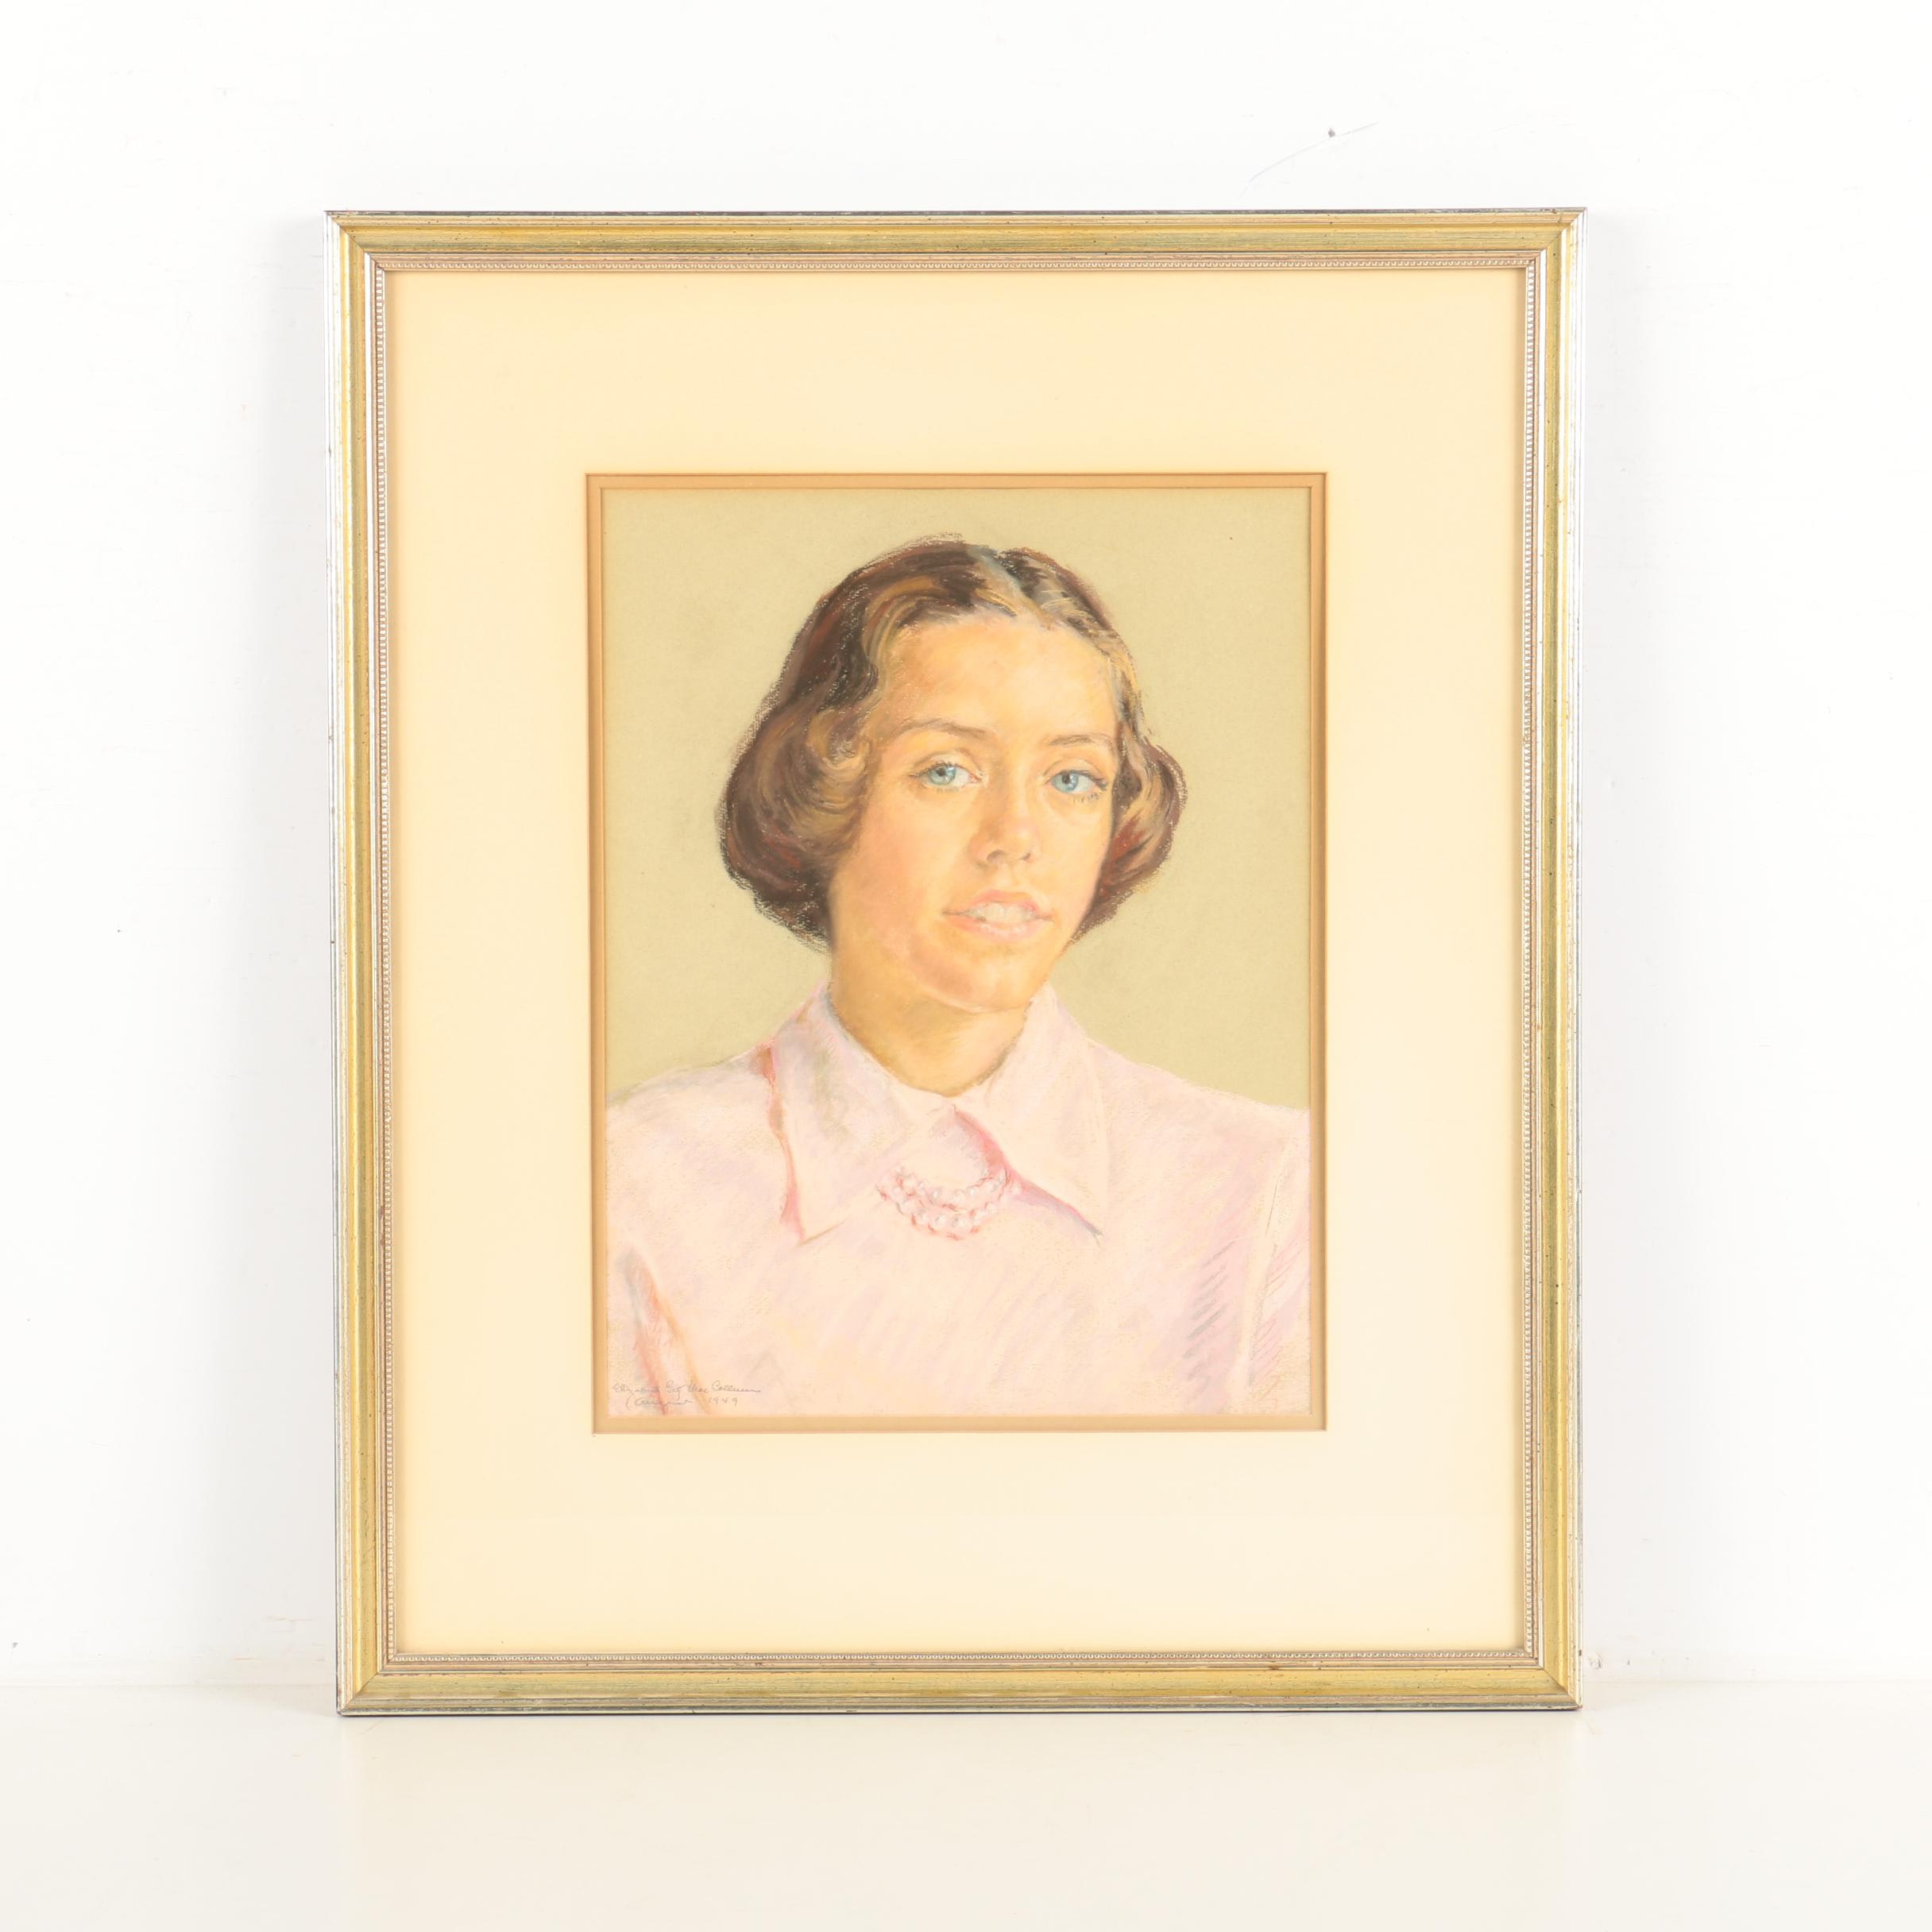 Elizabeth Collweer Pastel Drawing on Paper Portrait of a Woman